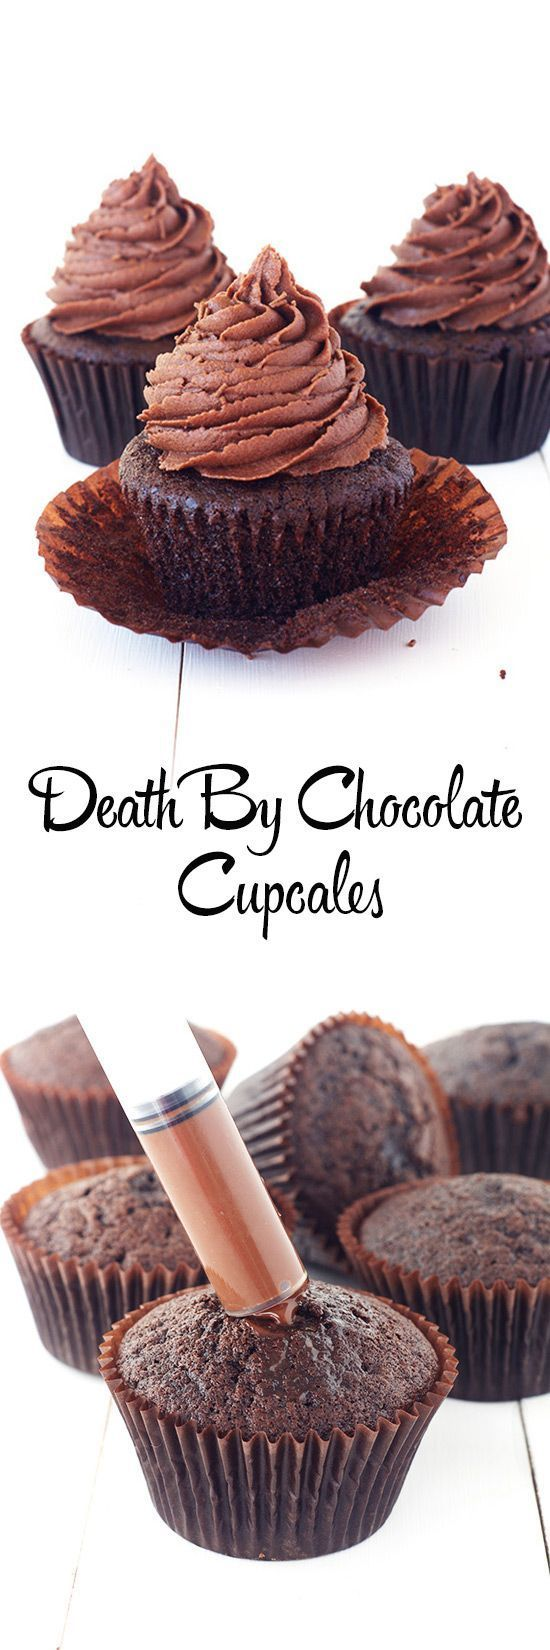 These cupcakes make my world spin round. Rich dark chocolate cake with a hidden pocket of gooey chocolate ganache and a tall topping of creamy dark chocolate buttercream frosting, oh and a scattering of chocolate sprinkles - its chocolate MADNESS I tell you.